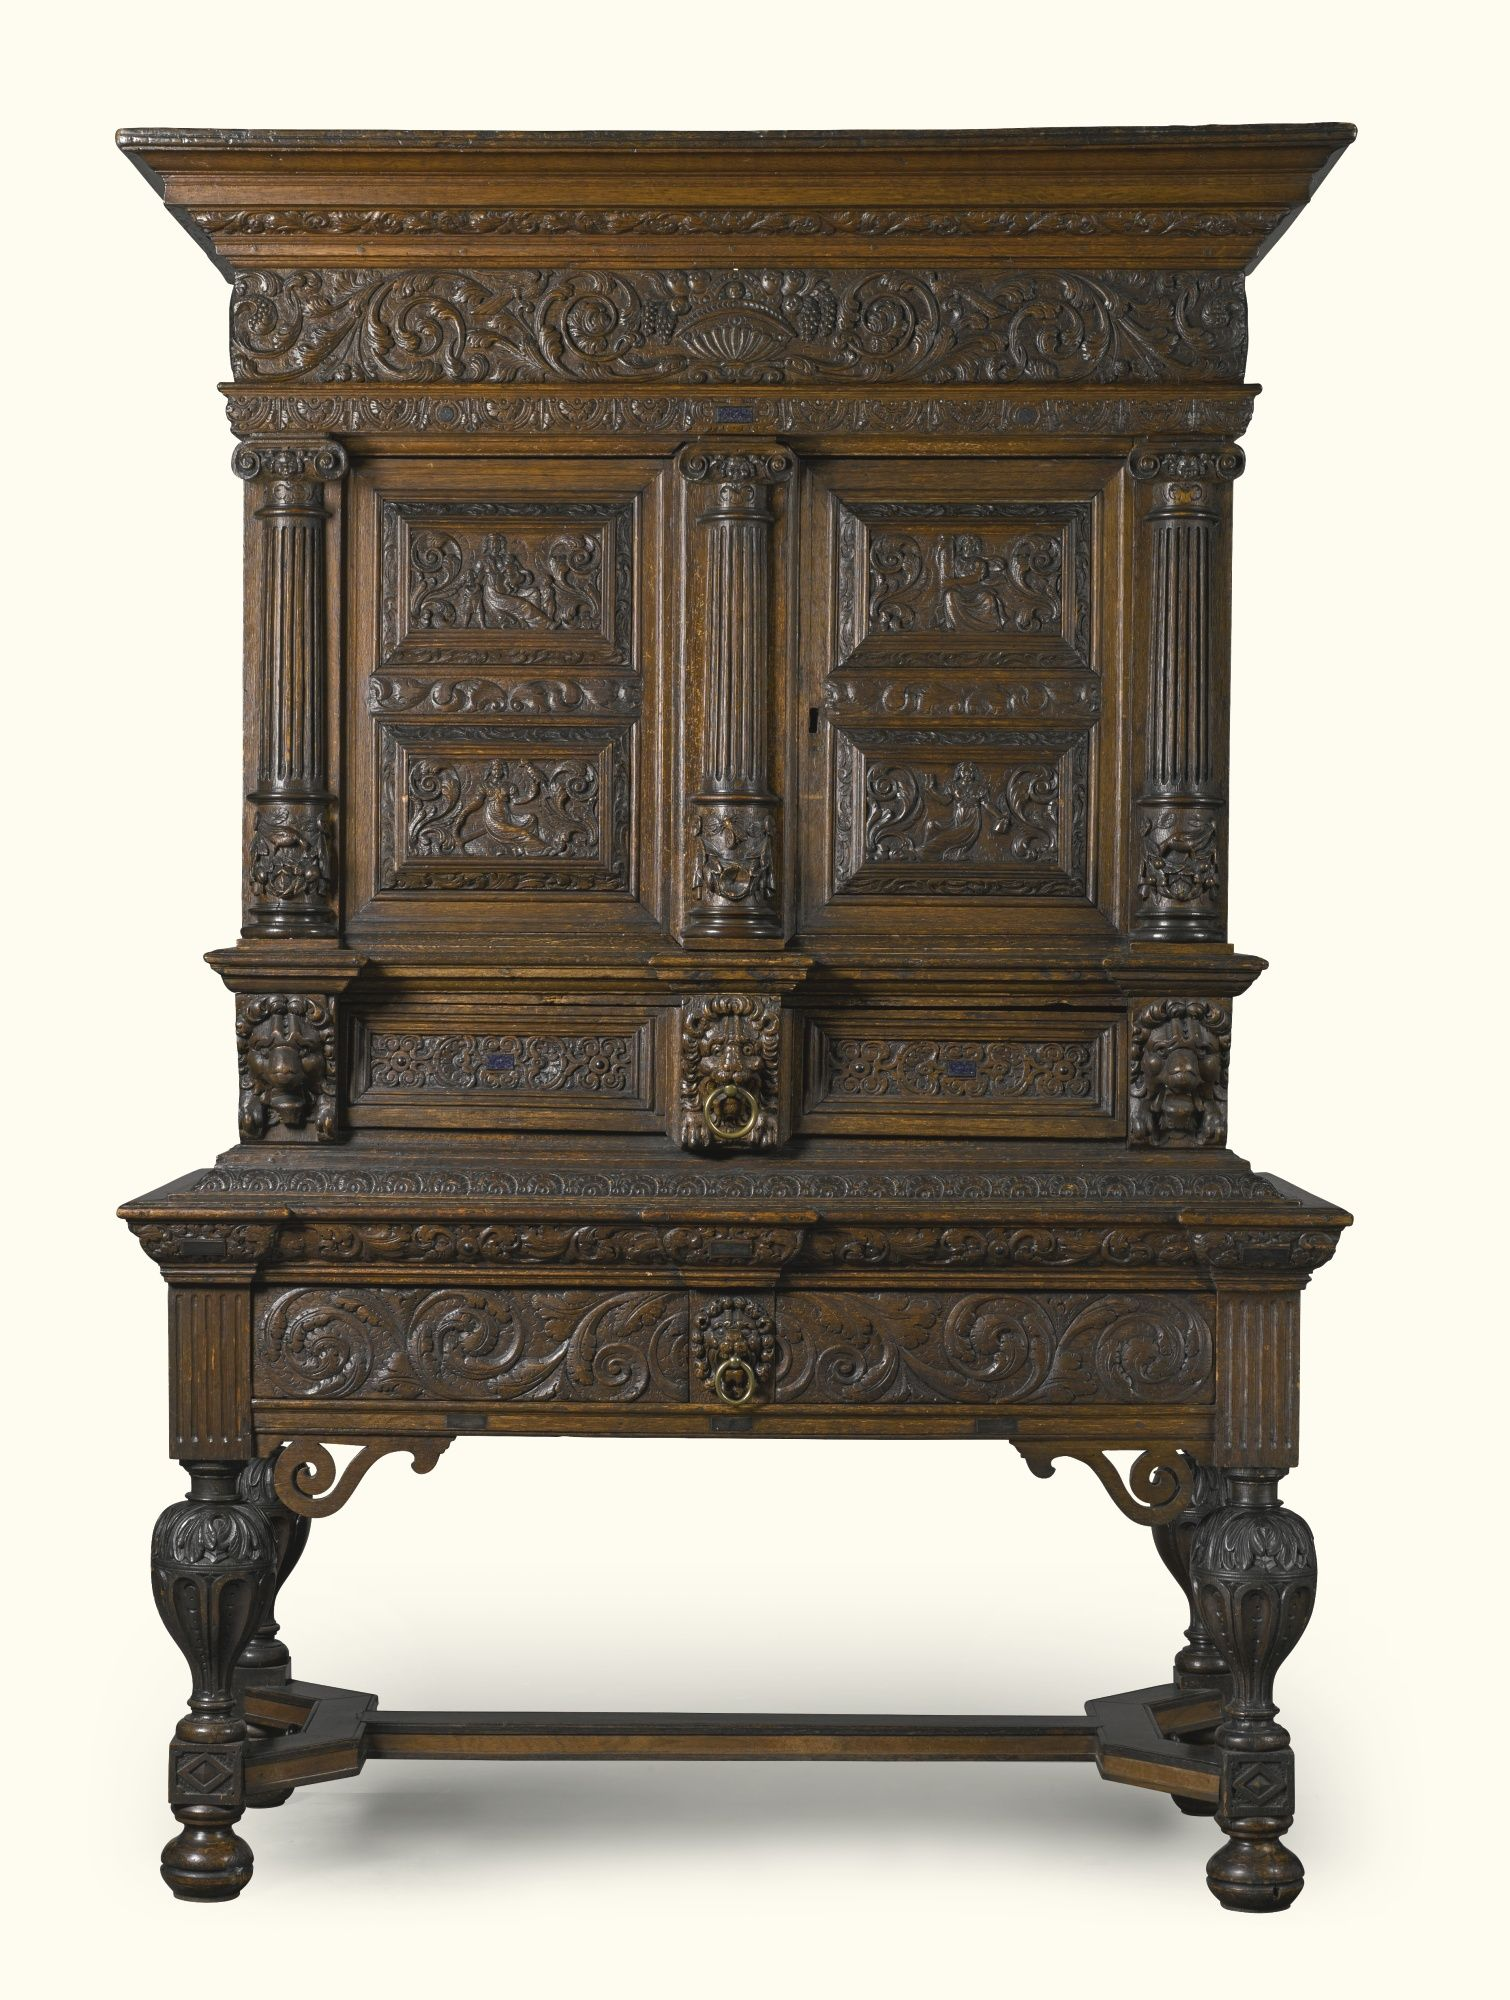 A Dutch Oak And Lapis Lazuli Inlaid Cabinet The Upper Section 17th Century The Lower Section 19th Centur Baroque Furniture Gothic Furniture Antique Furniture